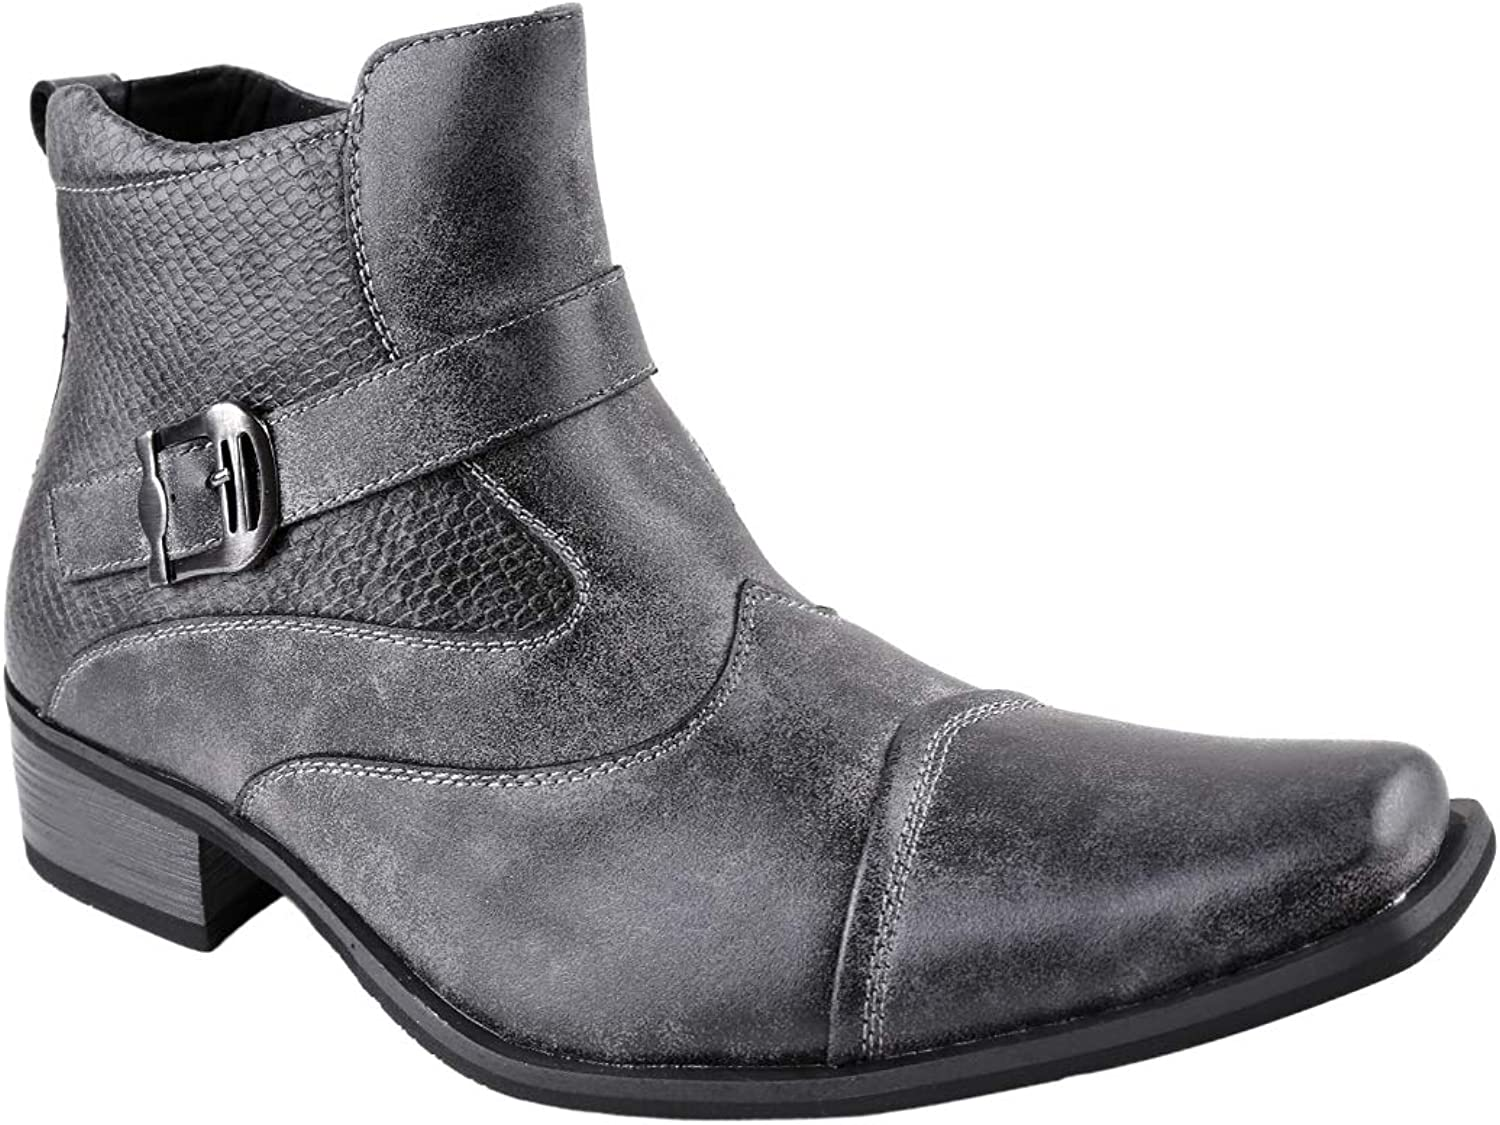 boot dress shoes